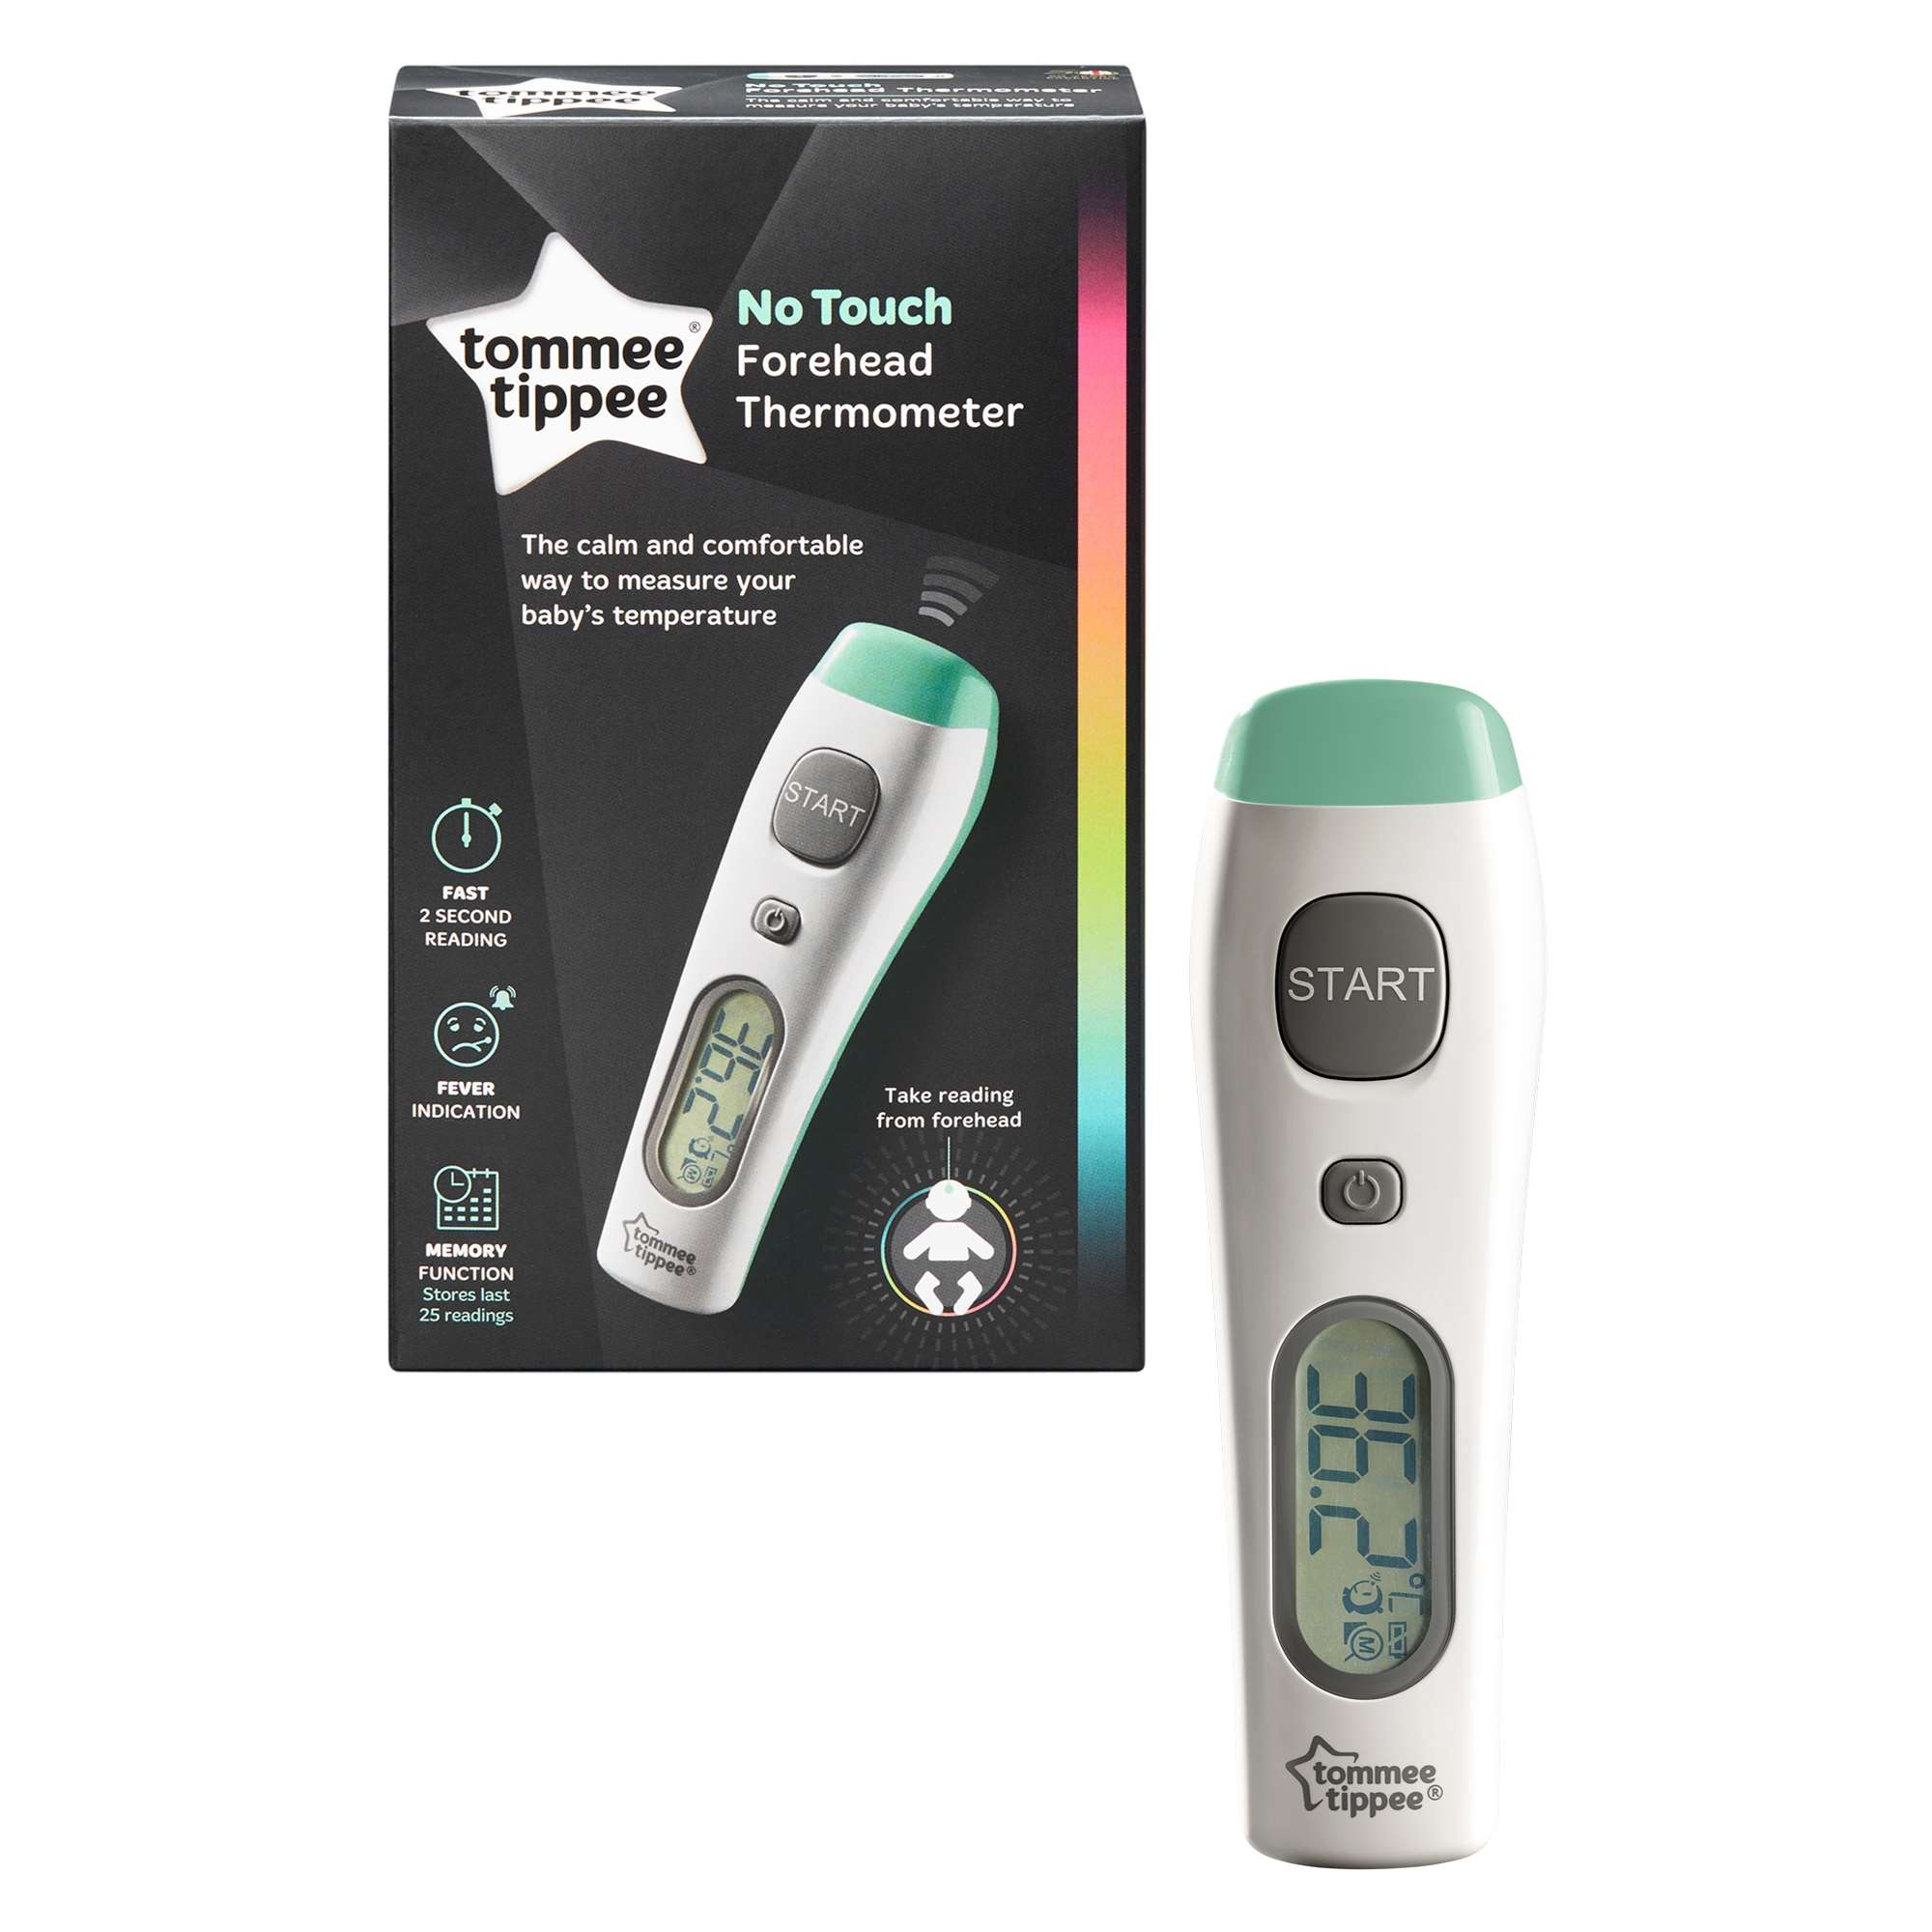 digital no touch thermometer, uk merged product & pack